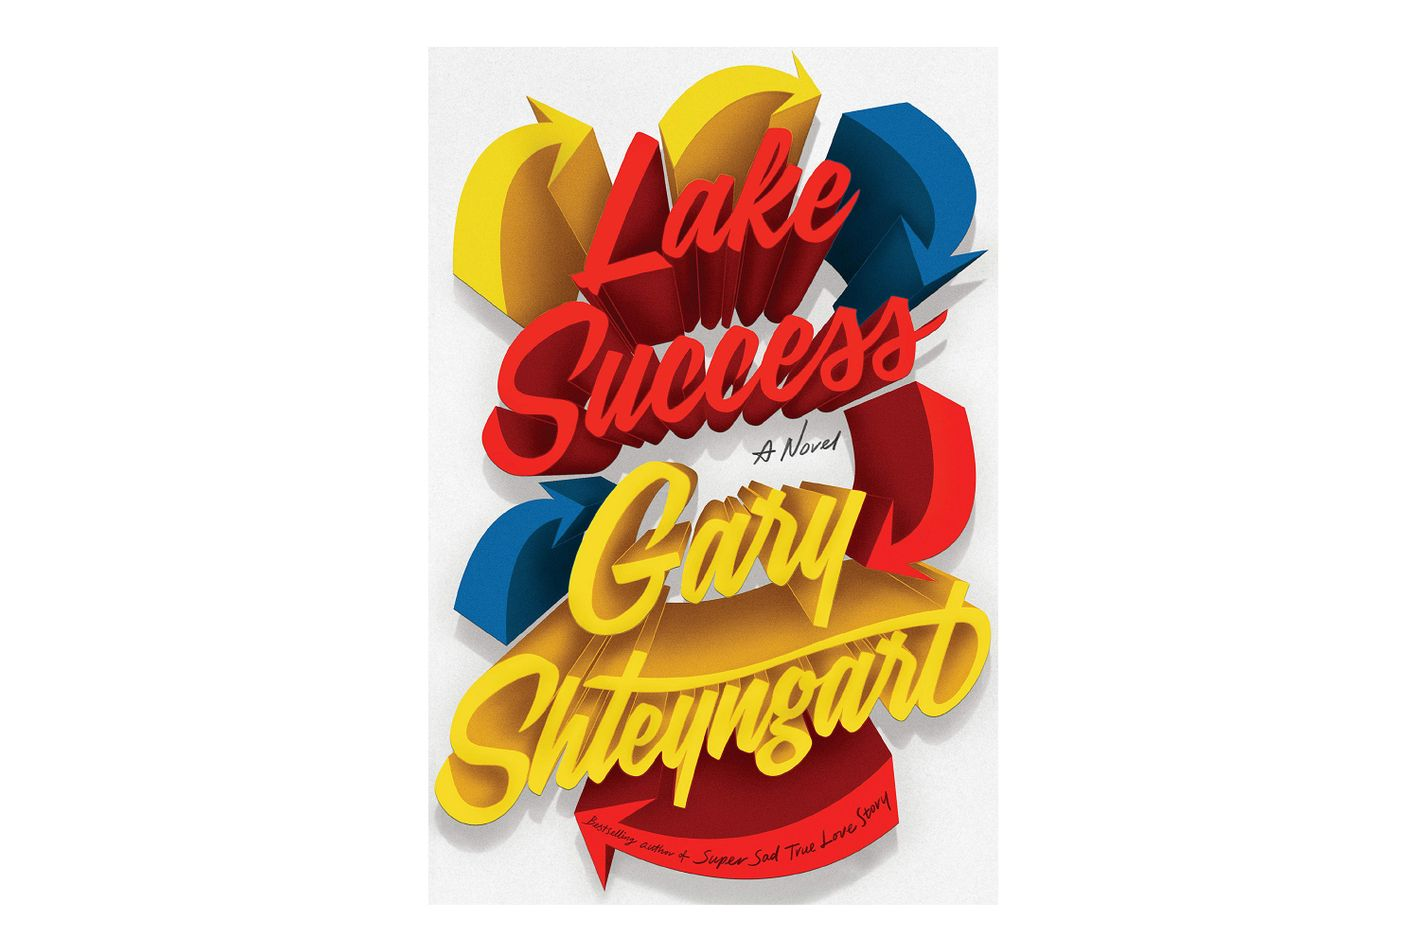 <em>Lake Success</em>, by Gary Shteyngart (Random House, 9/4)